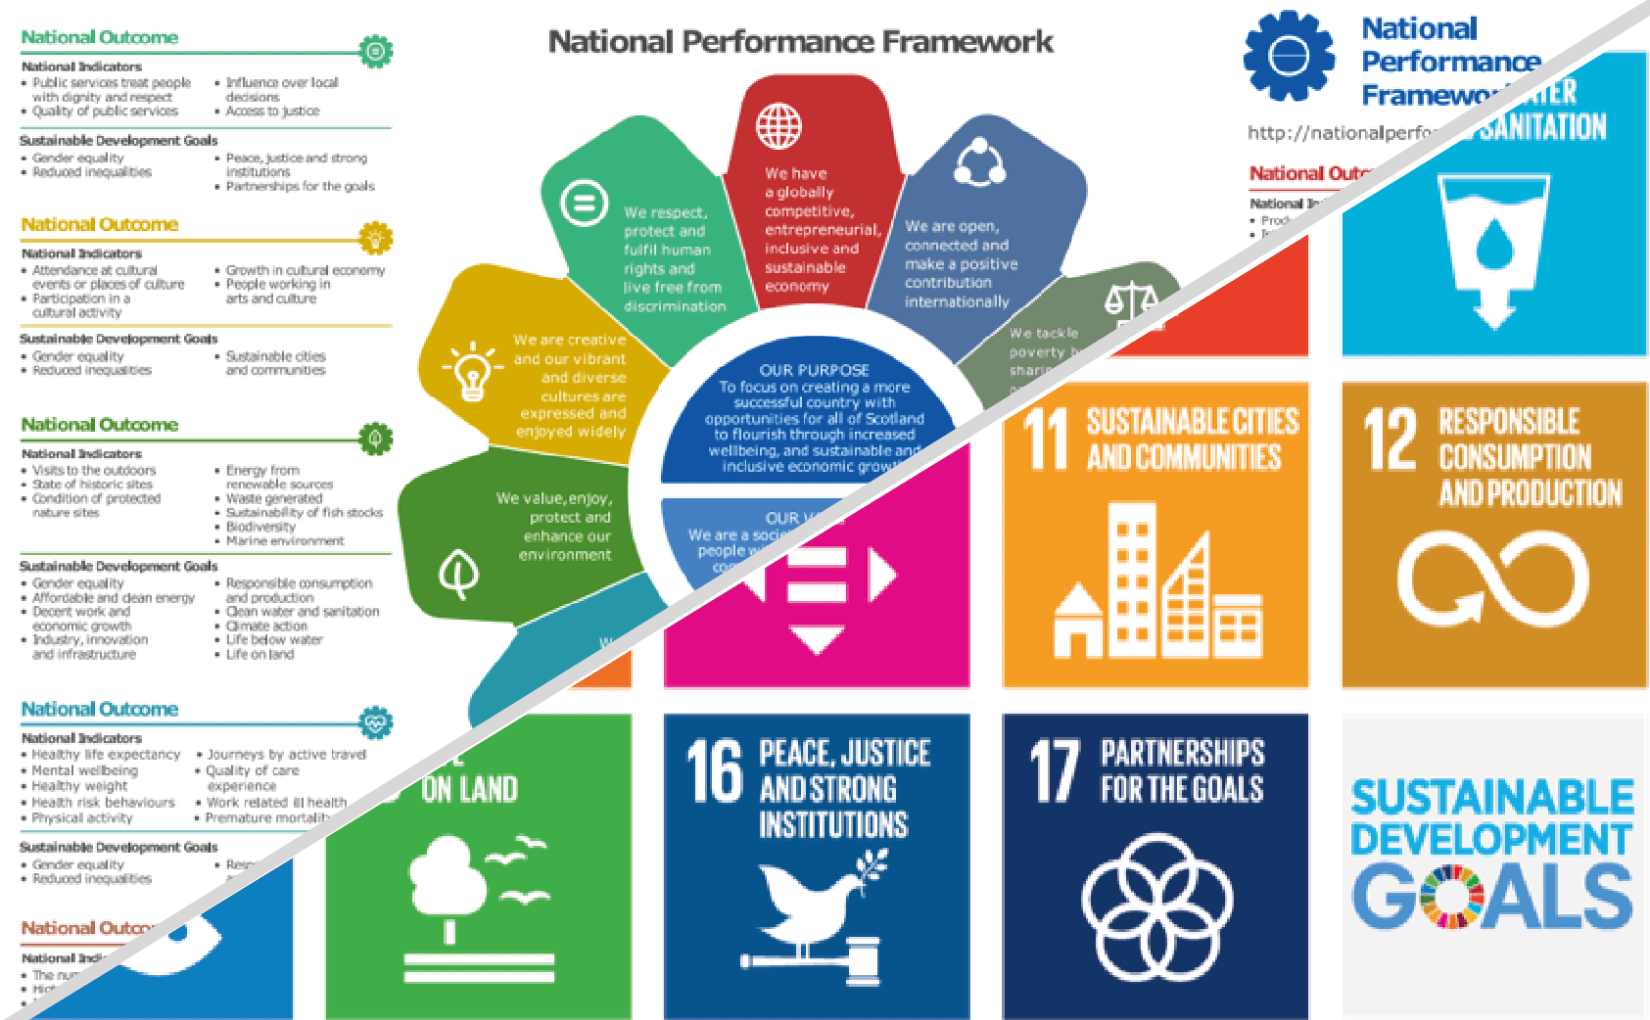 National Performance Framework and SDGs